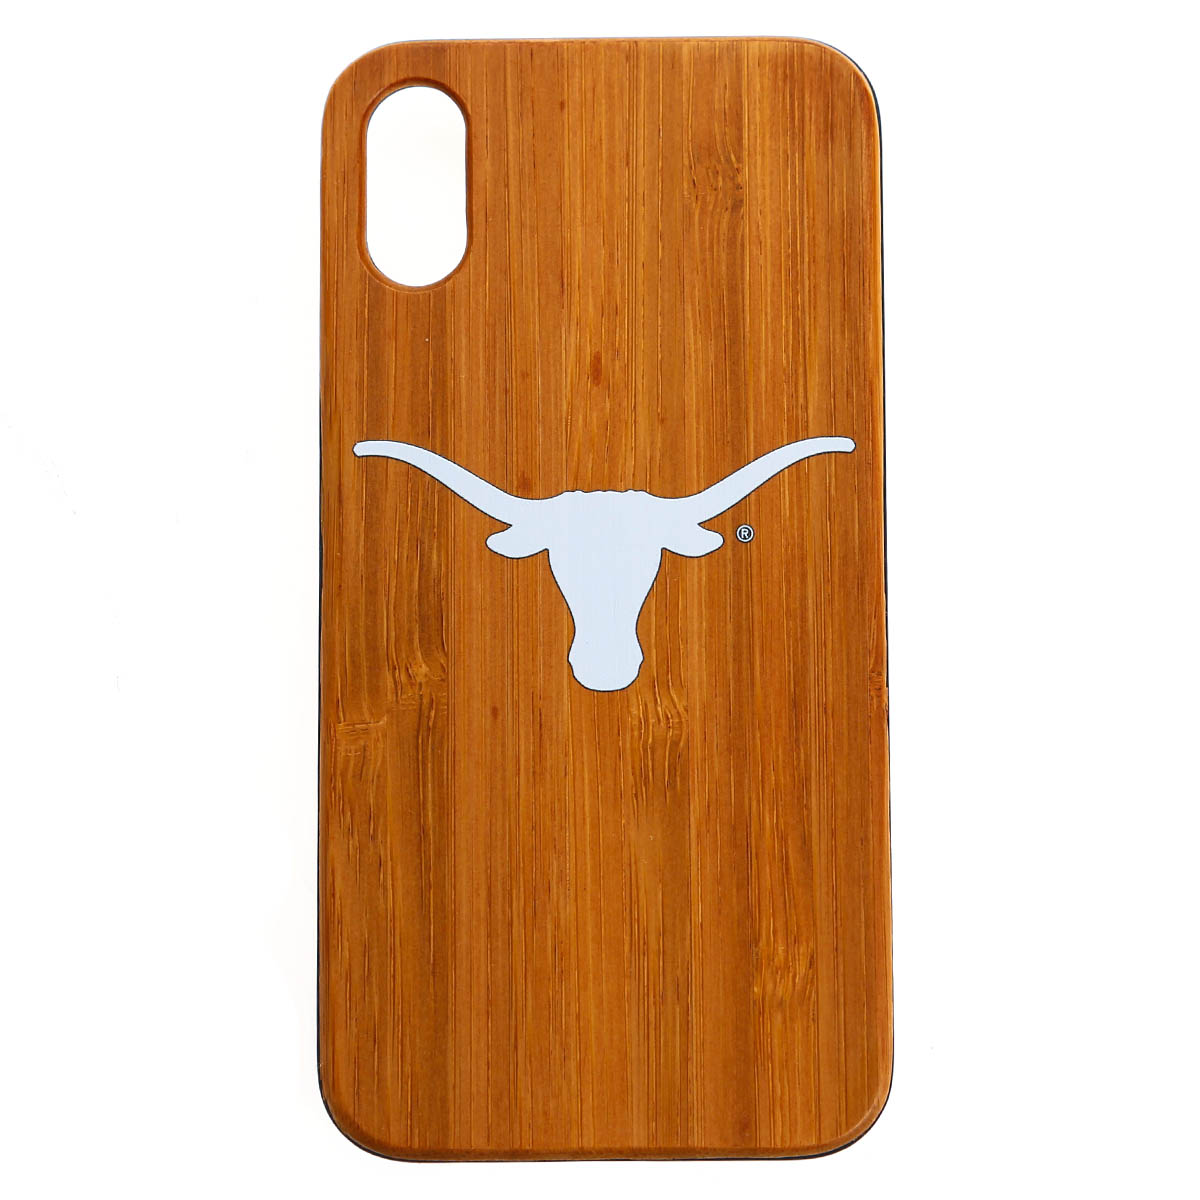 New University Texas Austin Longhorn Accessory or Phone Holder Pouch Key Chain